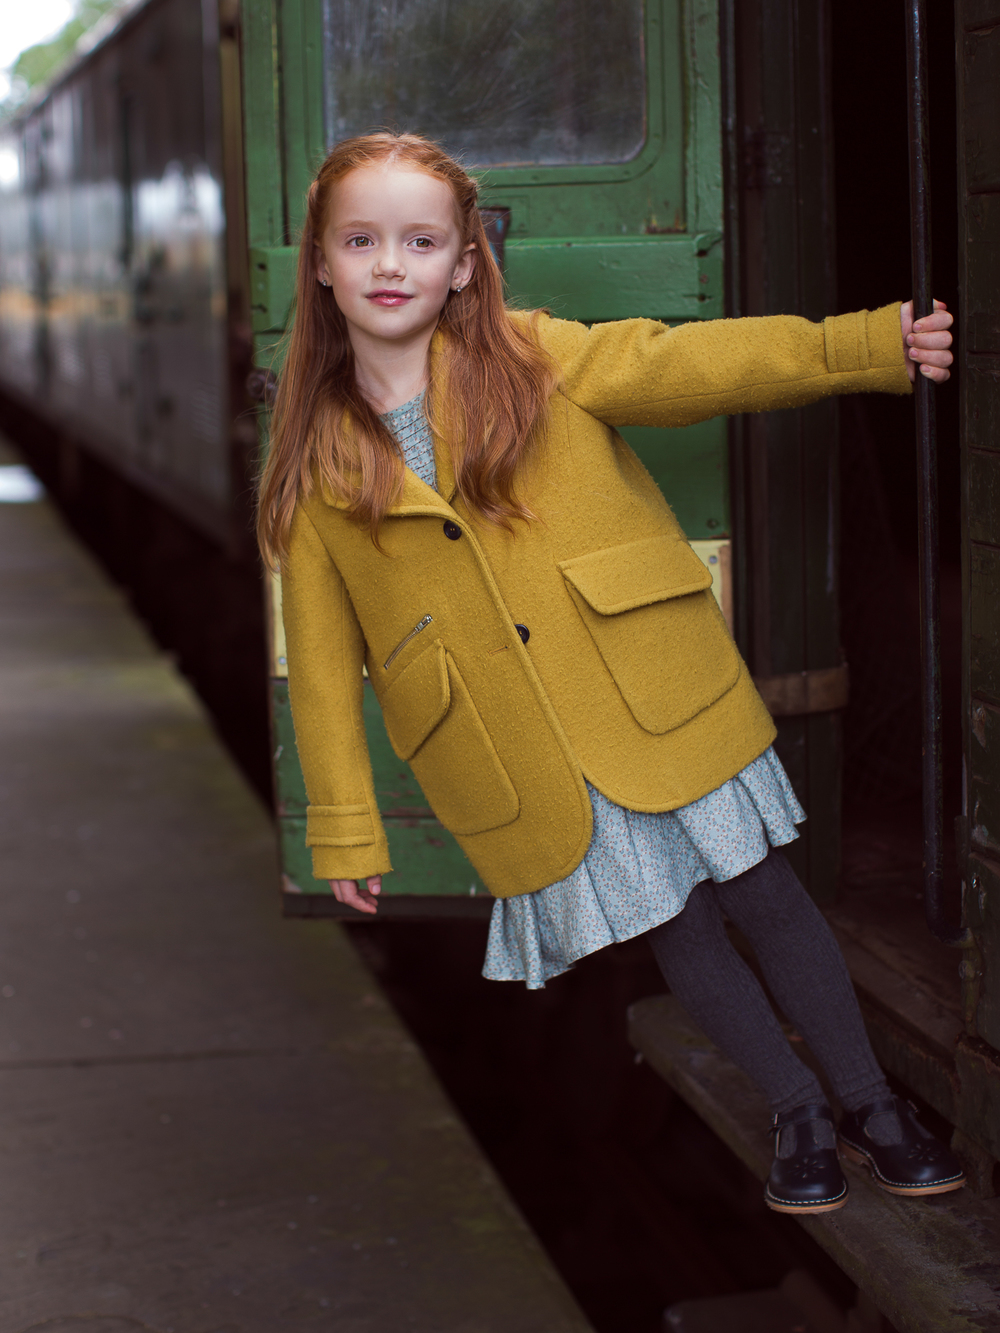 childrens portrait photographer--8.jpg